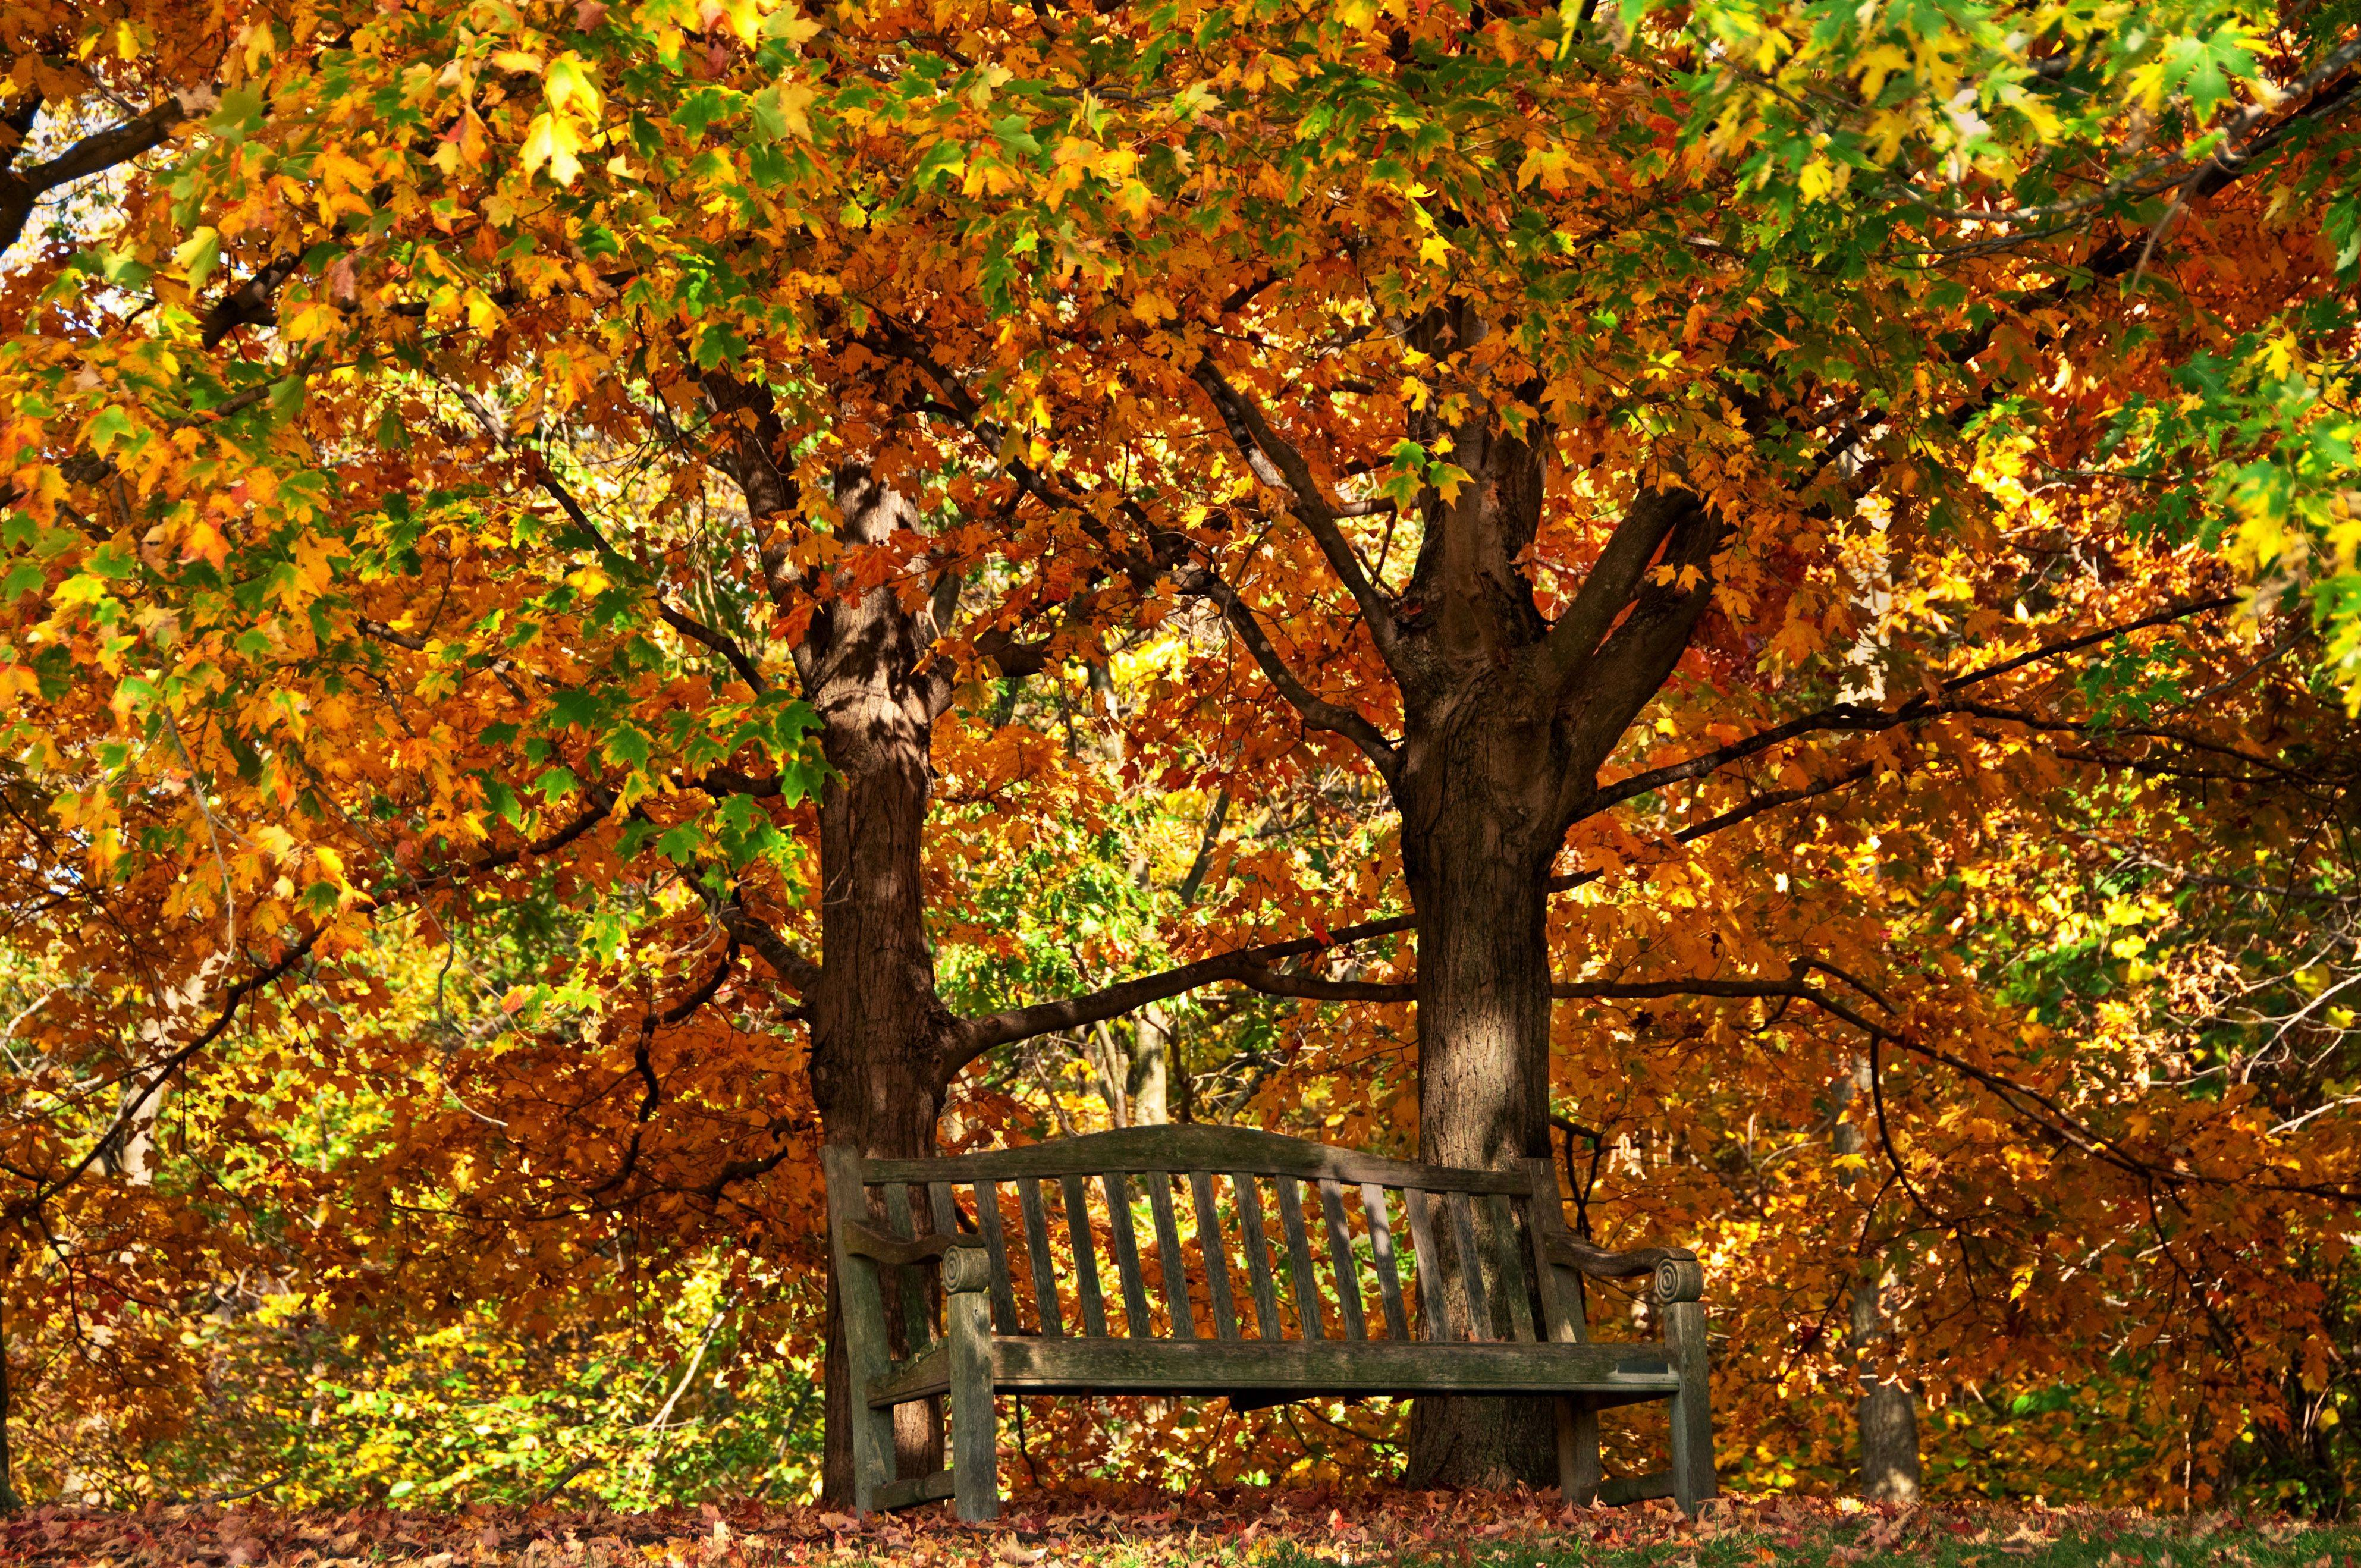 A bench among the fall leaves at the Chicago Botanic Garden at McDonald Woods on last week.